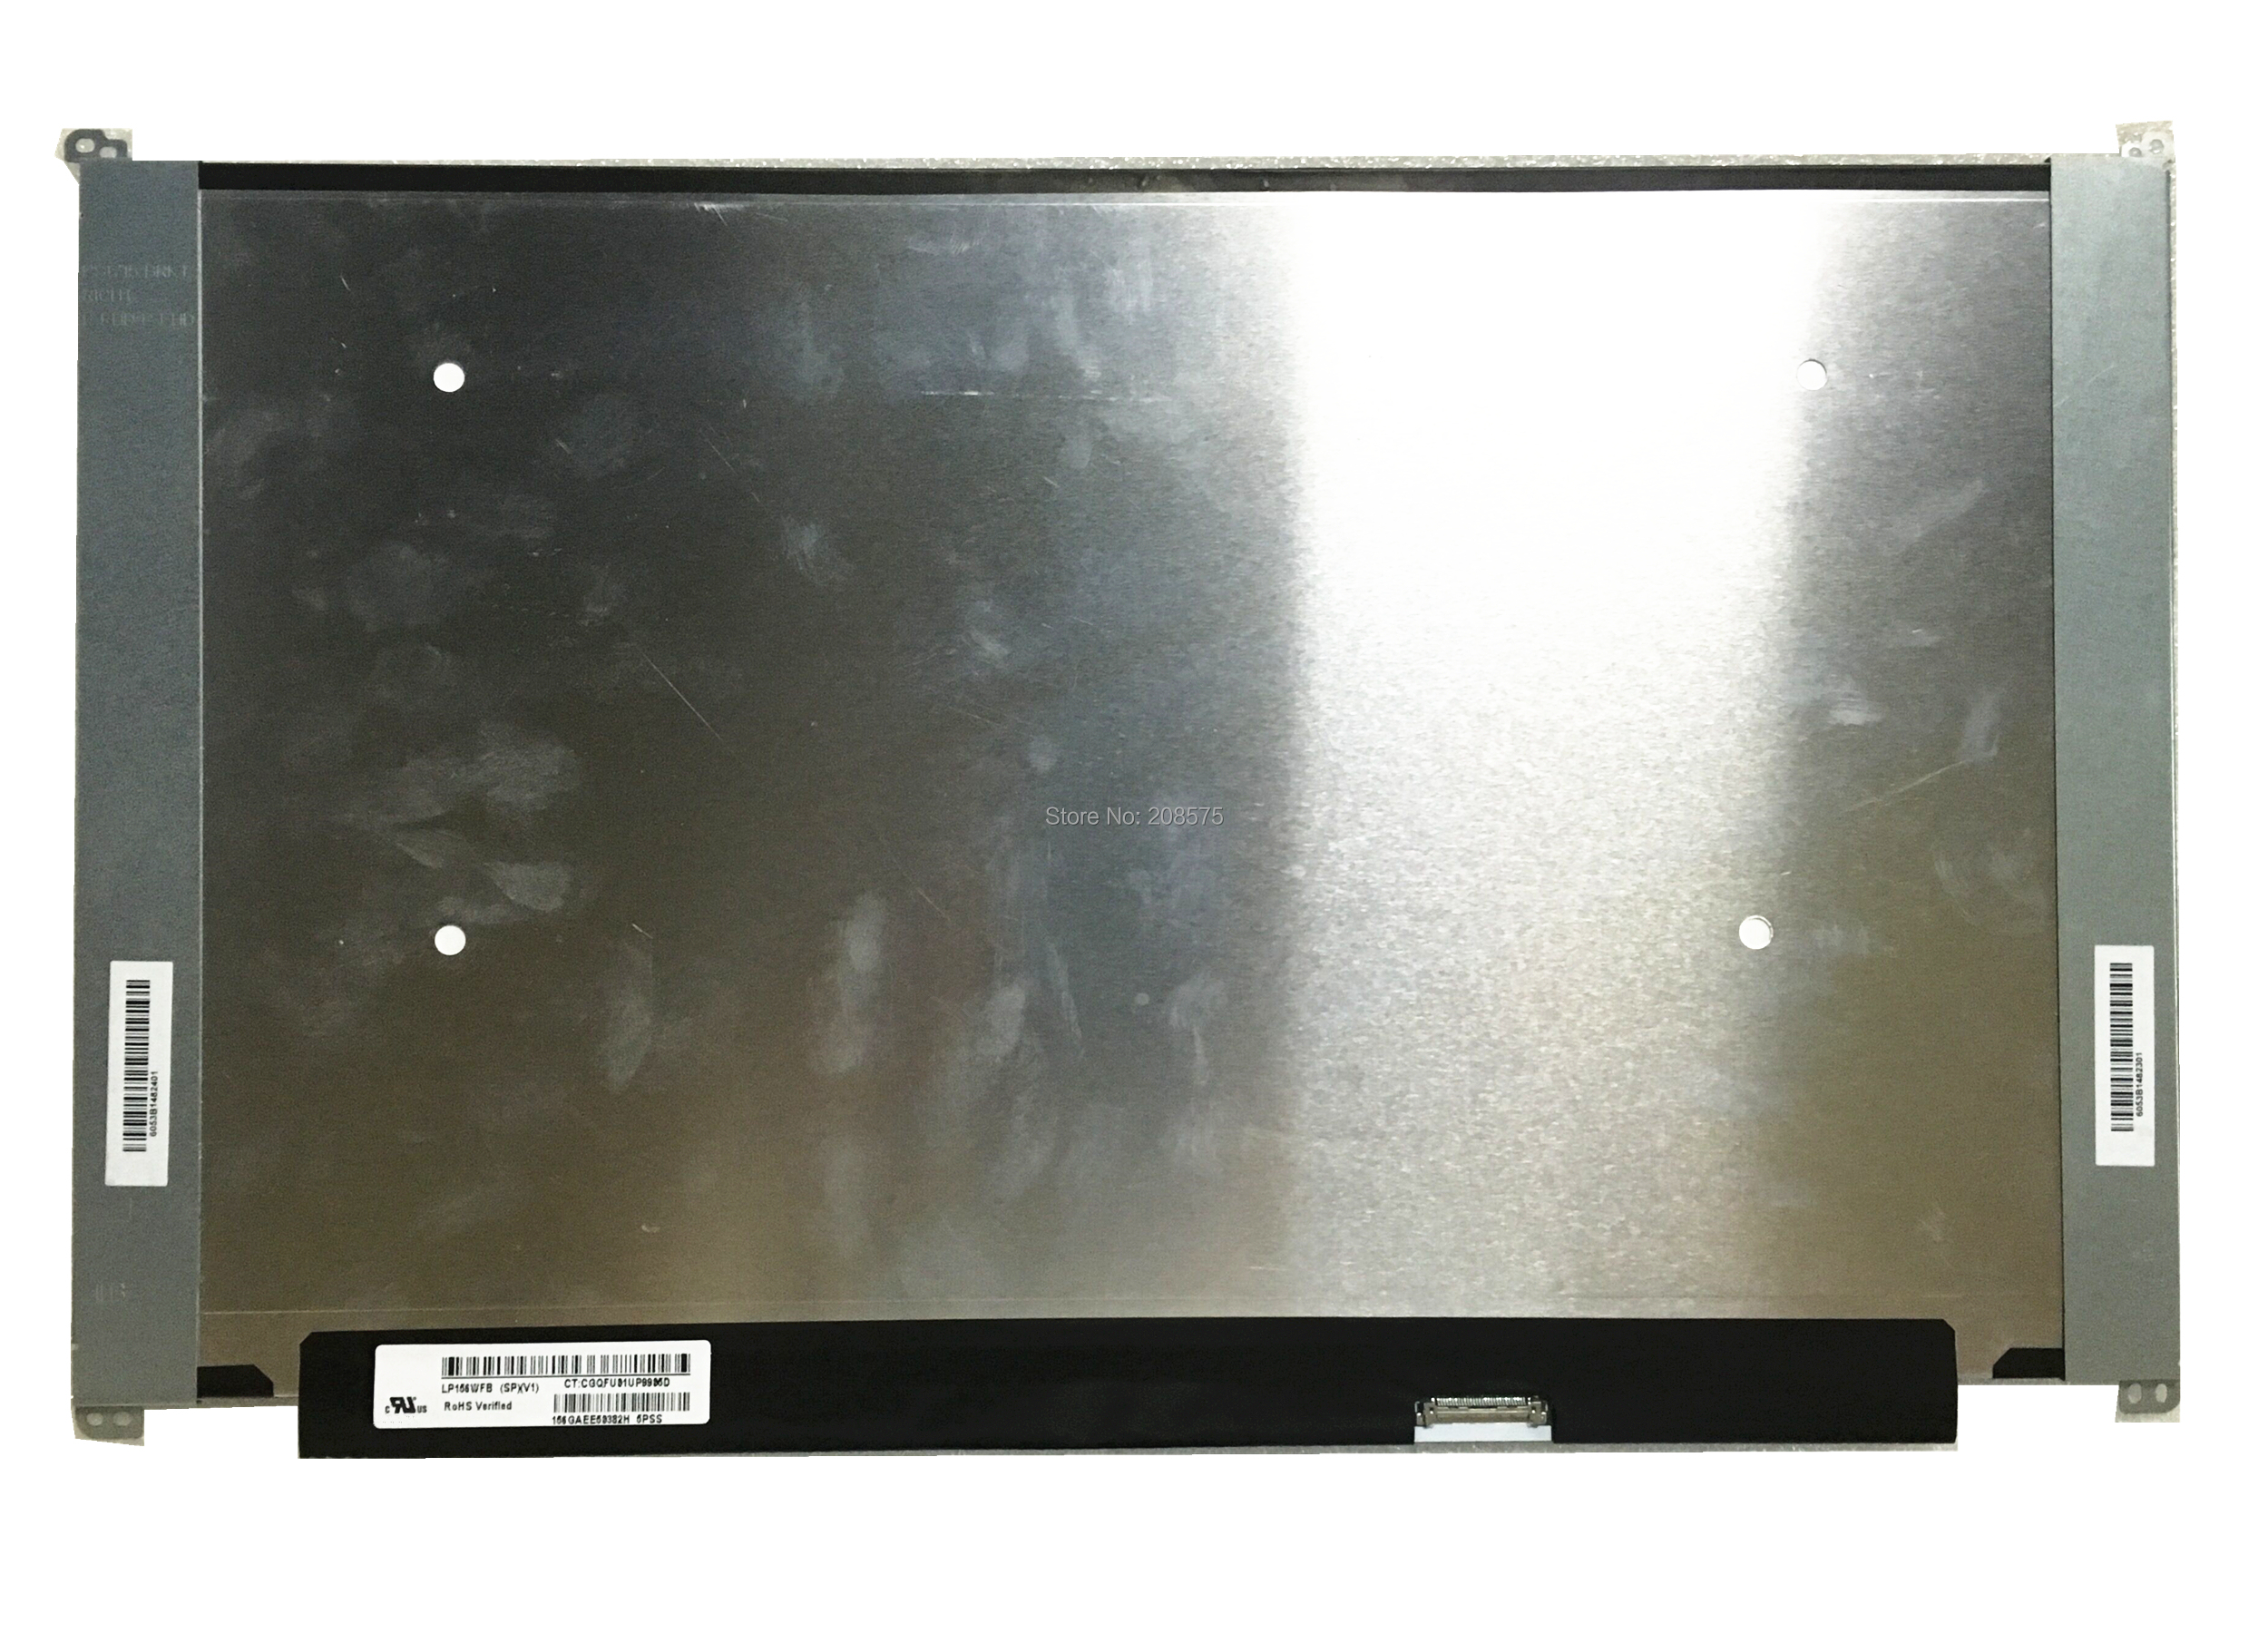 Free shipping! LP156WFB-SPV1 LP156WFB SPV1 15.6''inch Laptop Lcd Screen 1920*1080 EDP 30 pins LED Display Laptop Screen free shipping new original 13 3 laptop lcd led screen lq133m1jw01 1920 1080 30pins notebook display